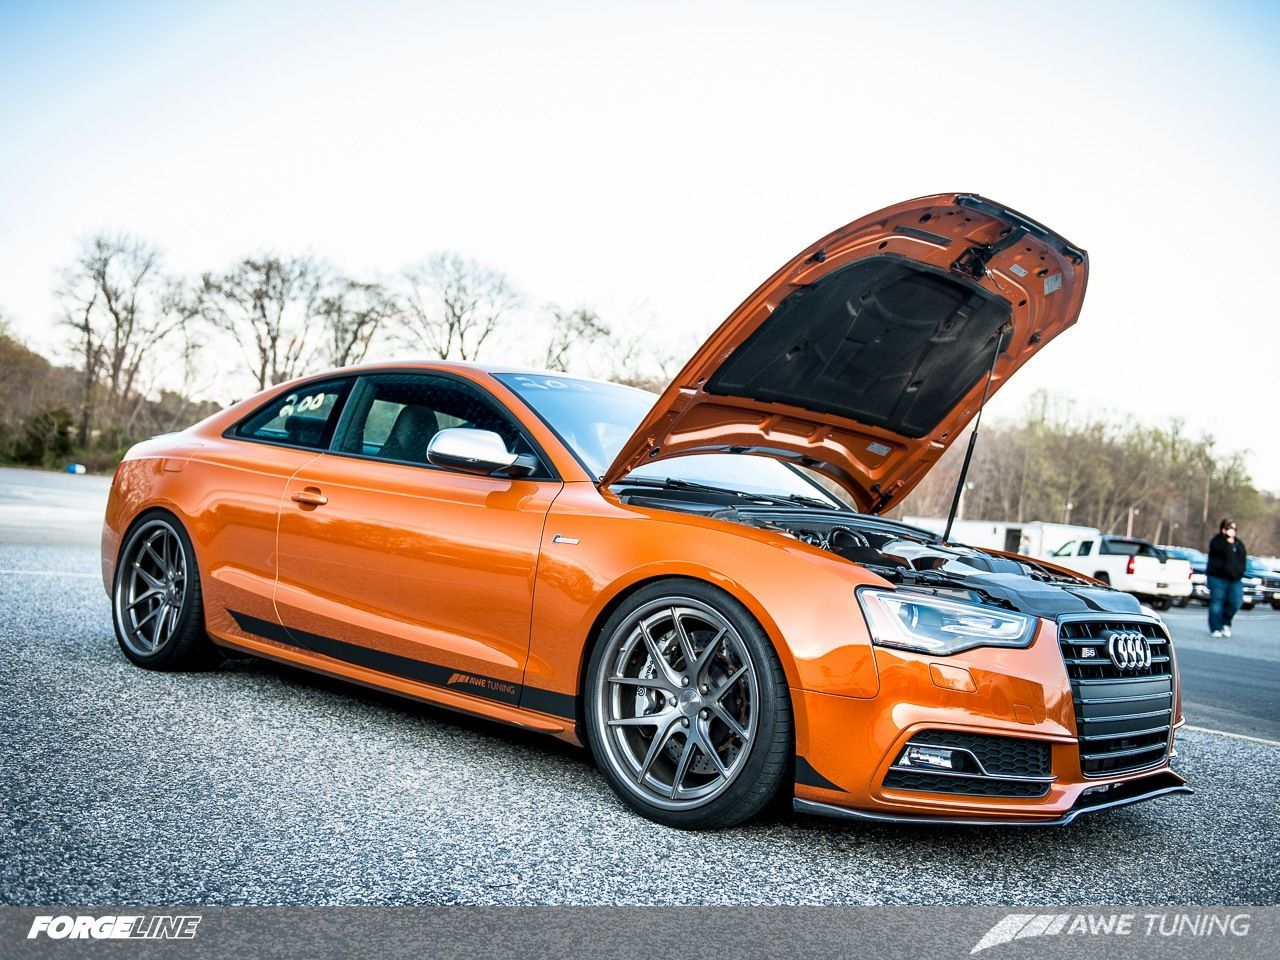 2013 Audi S5 | AWE Tuning's Audi S5 on Forgeline VX3C Concave Wheels